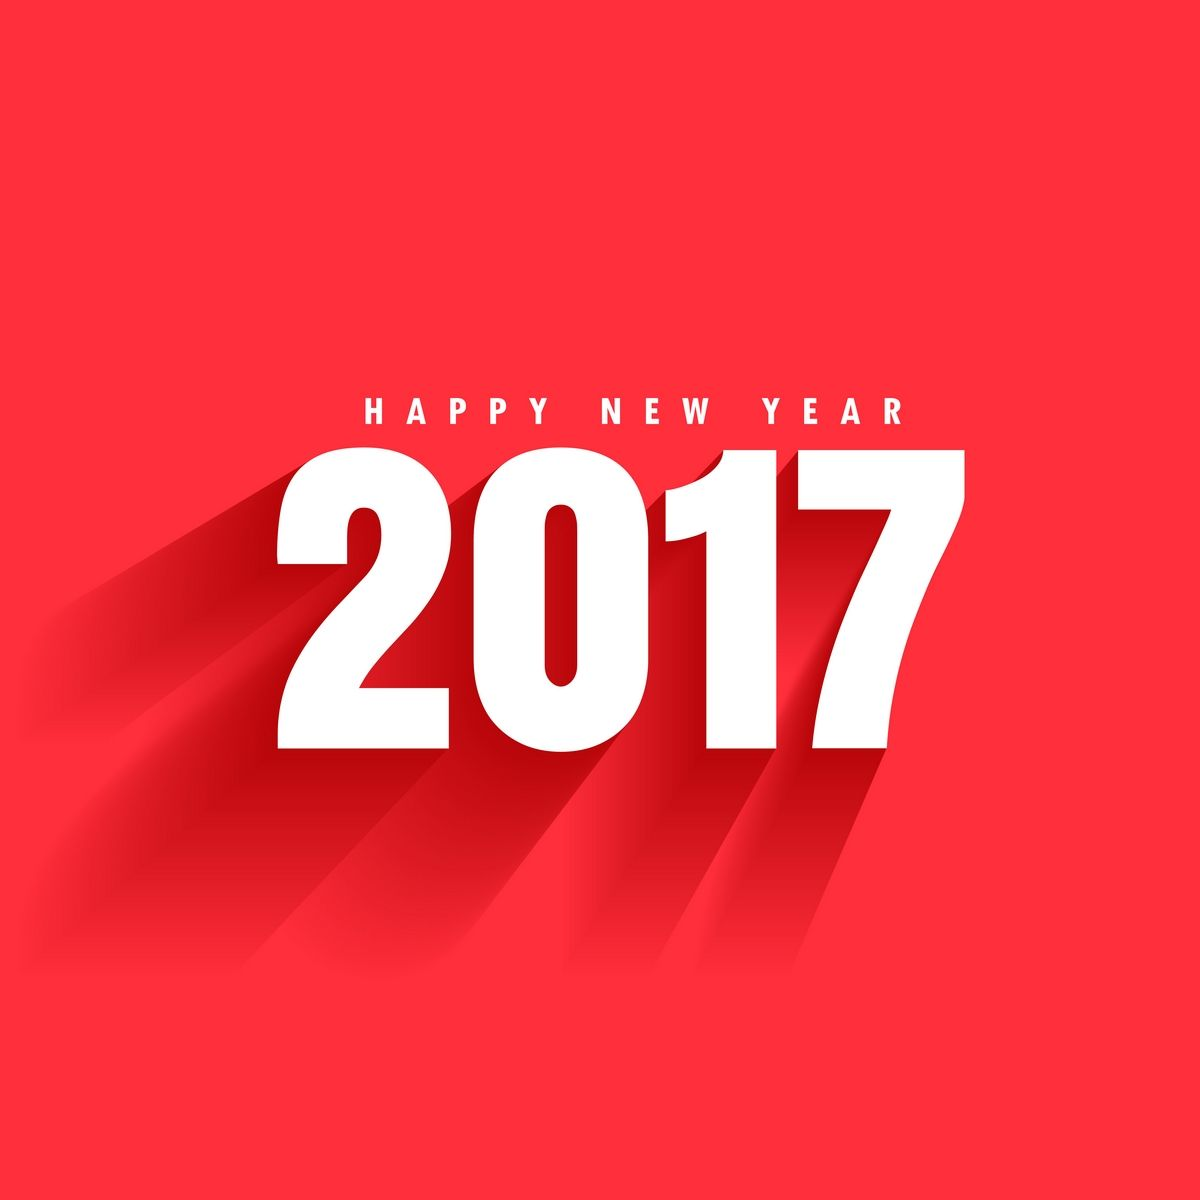 Simple White Happy New Year 2017 Wallpaper with red background